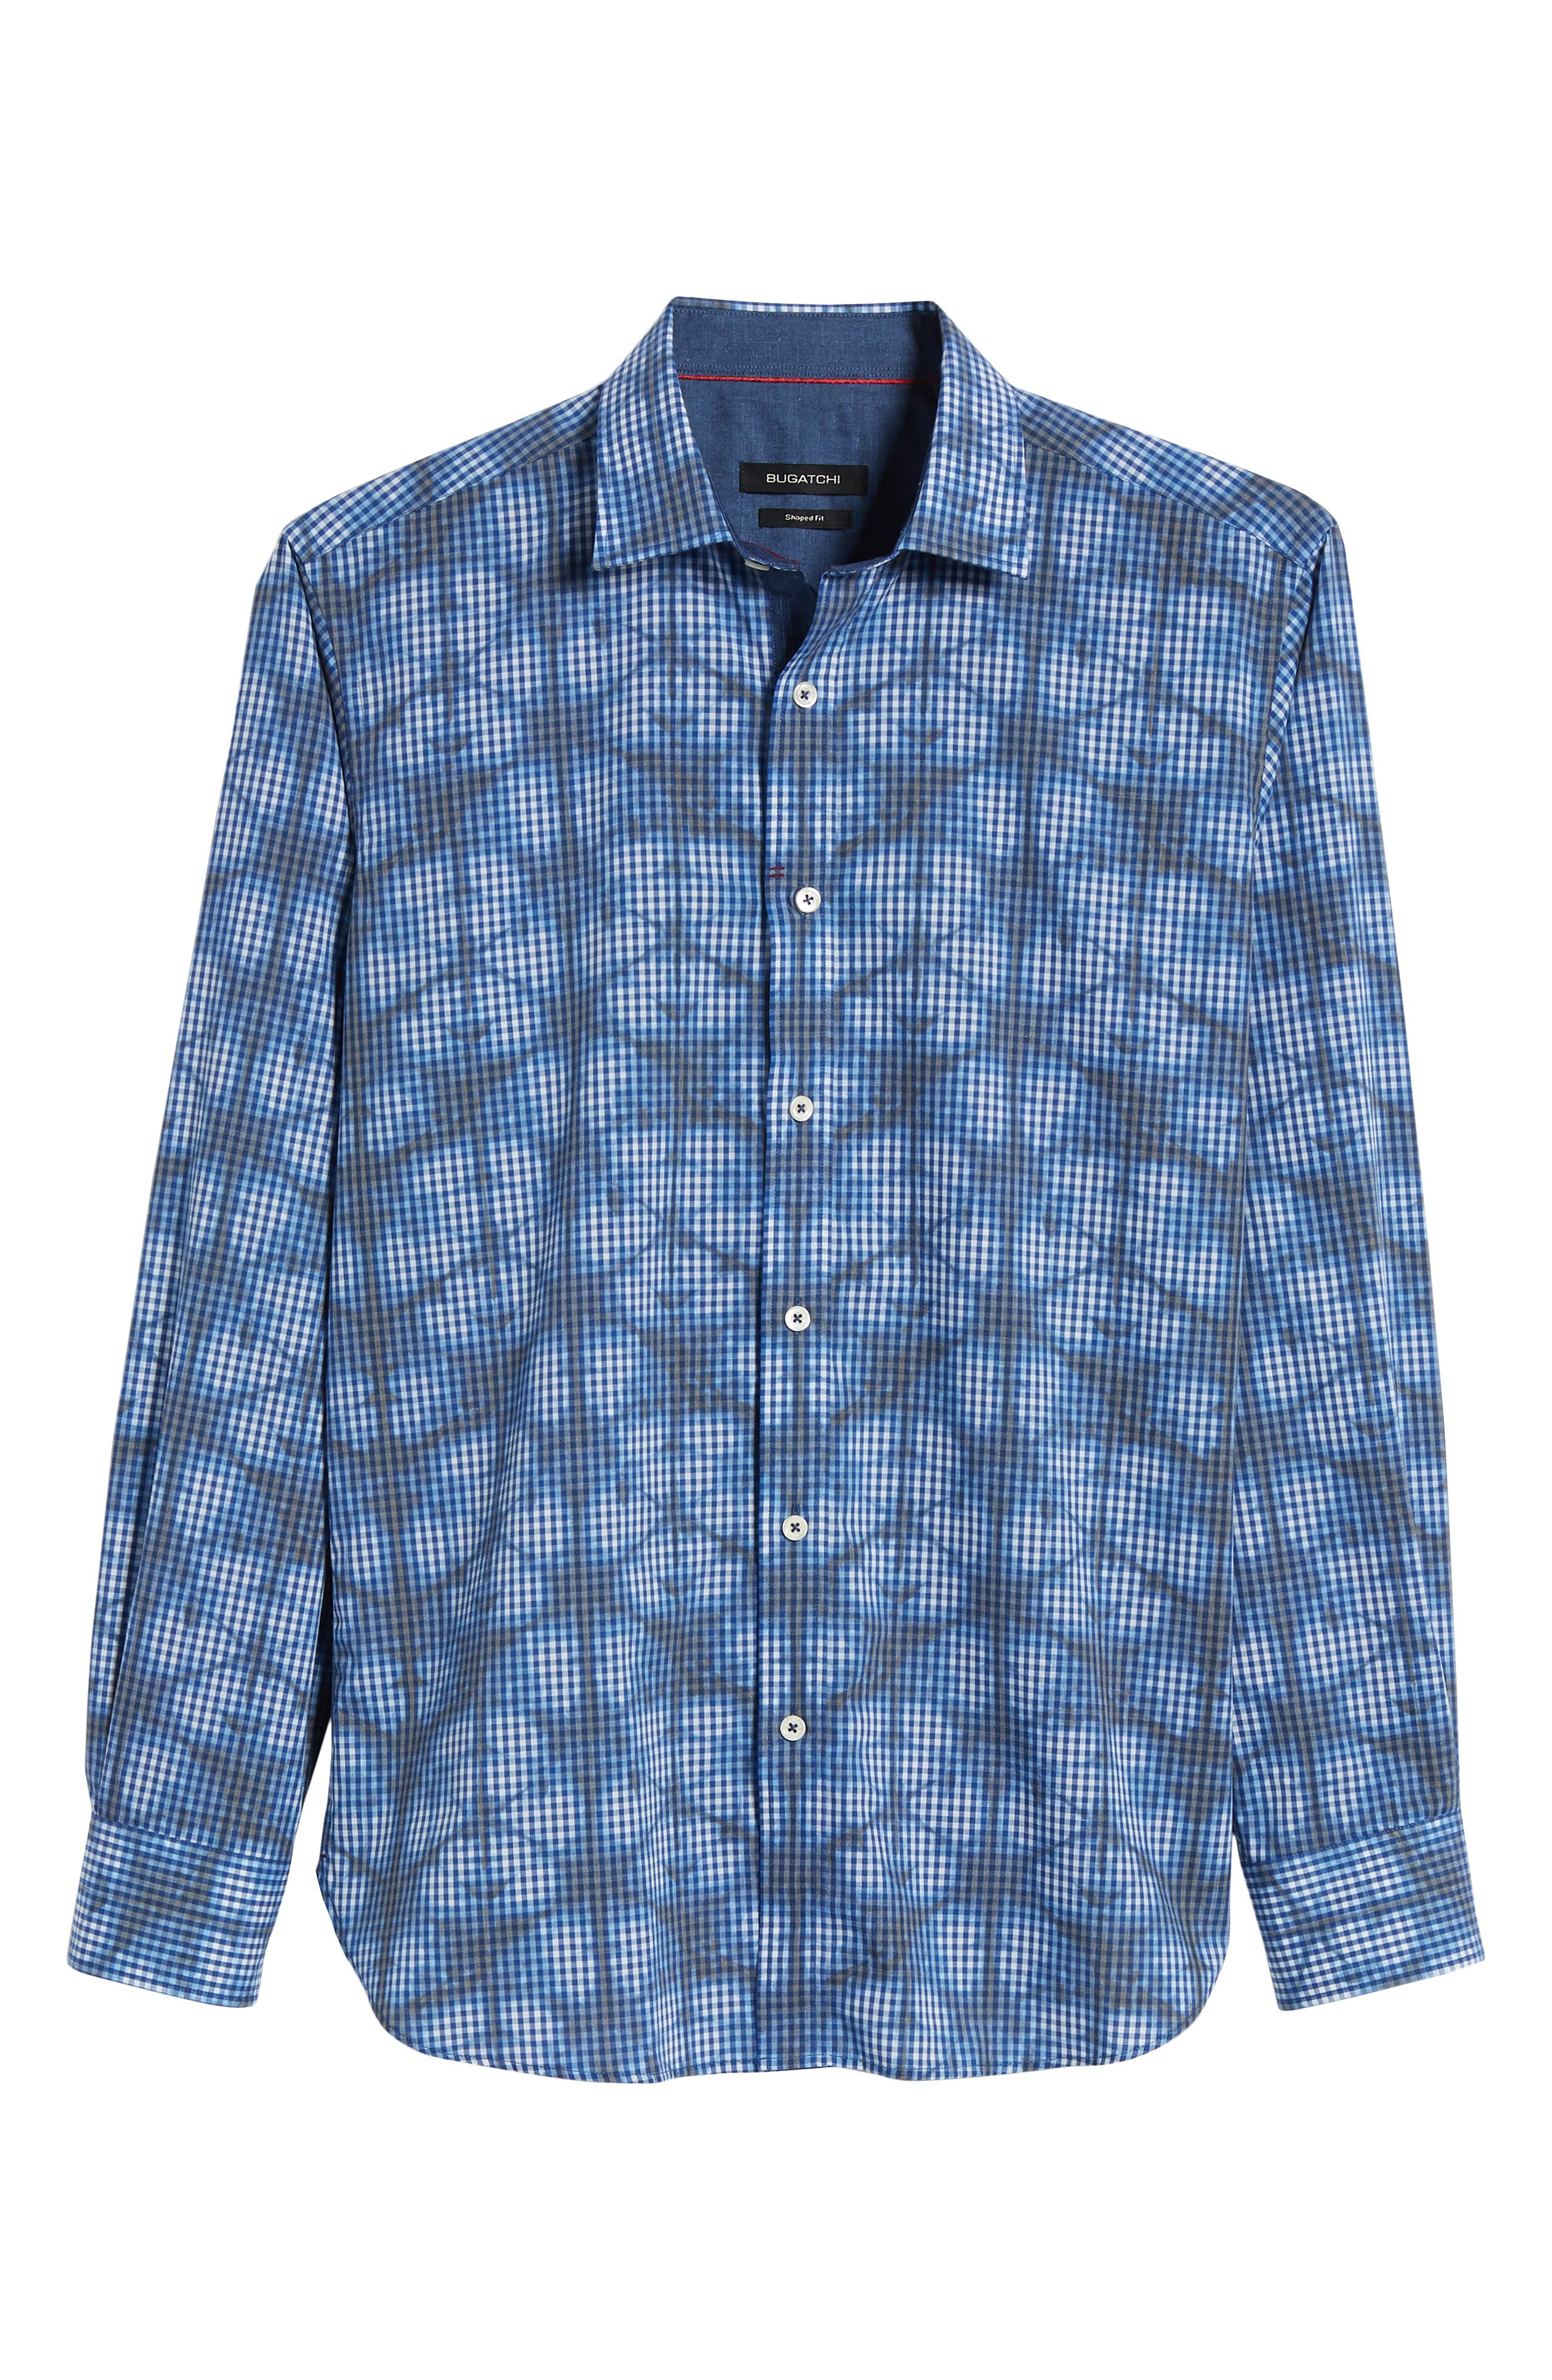 Shaped Fit Abstract Print Sport Shirt,                             Alternate thumbnail 6, color,                             411